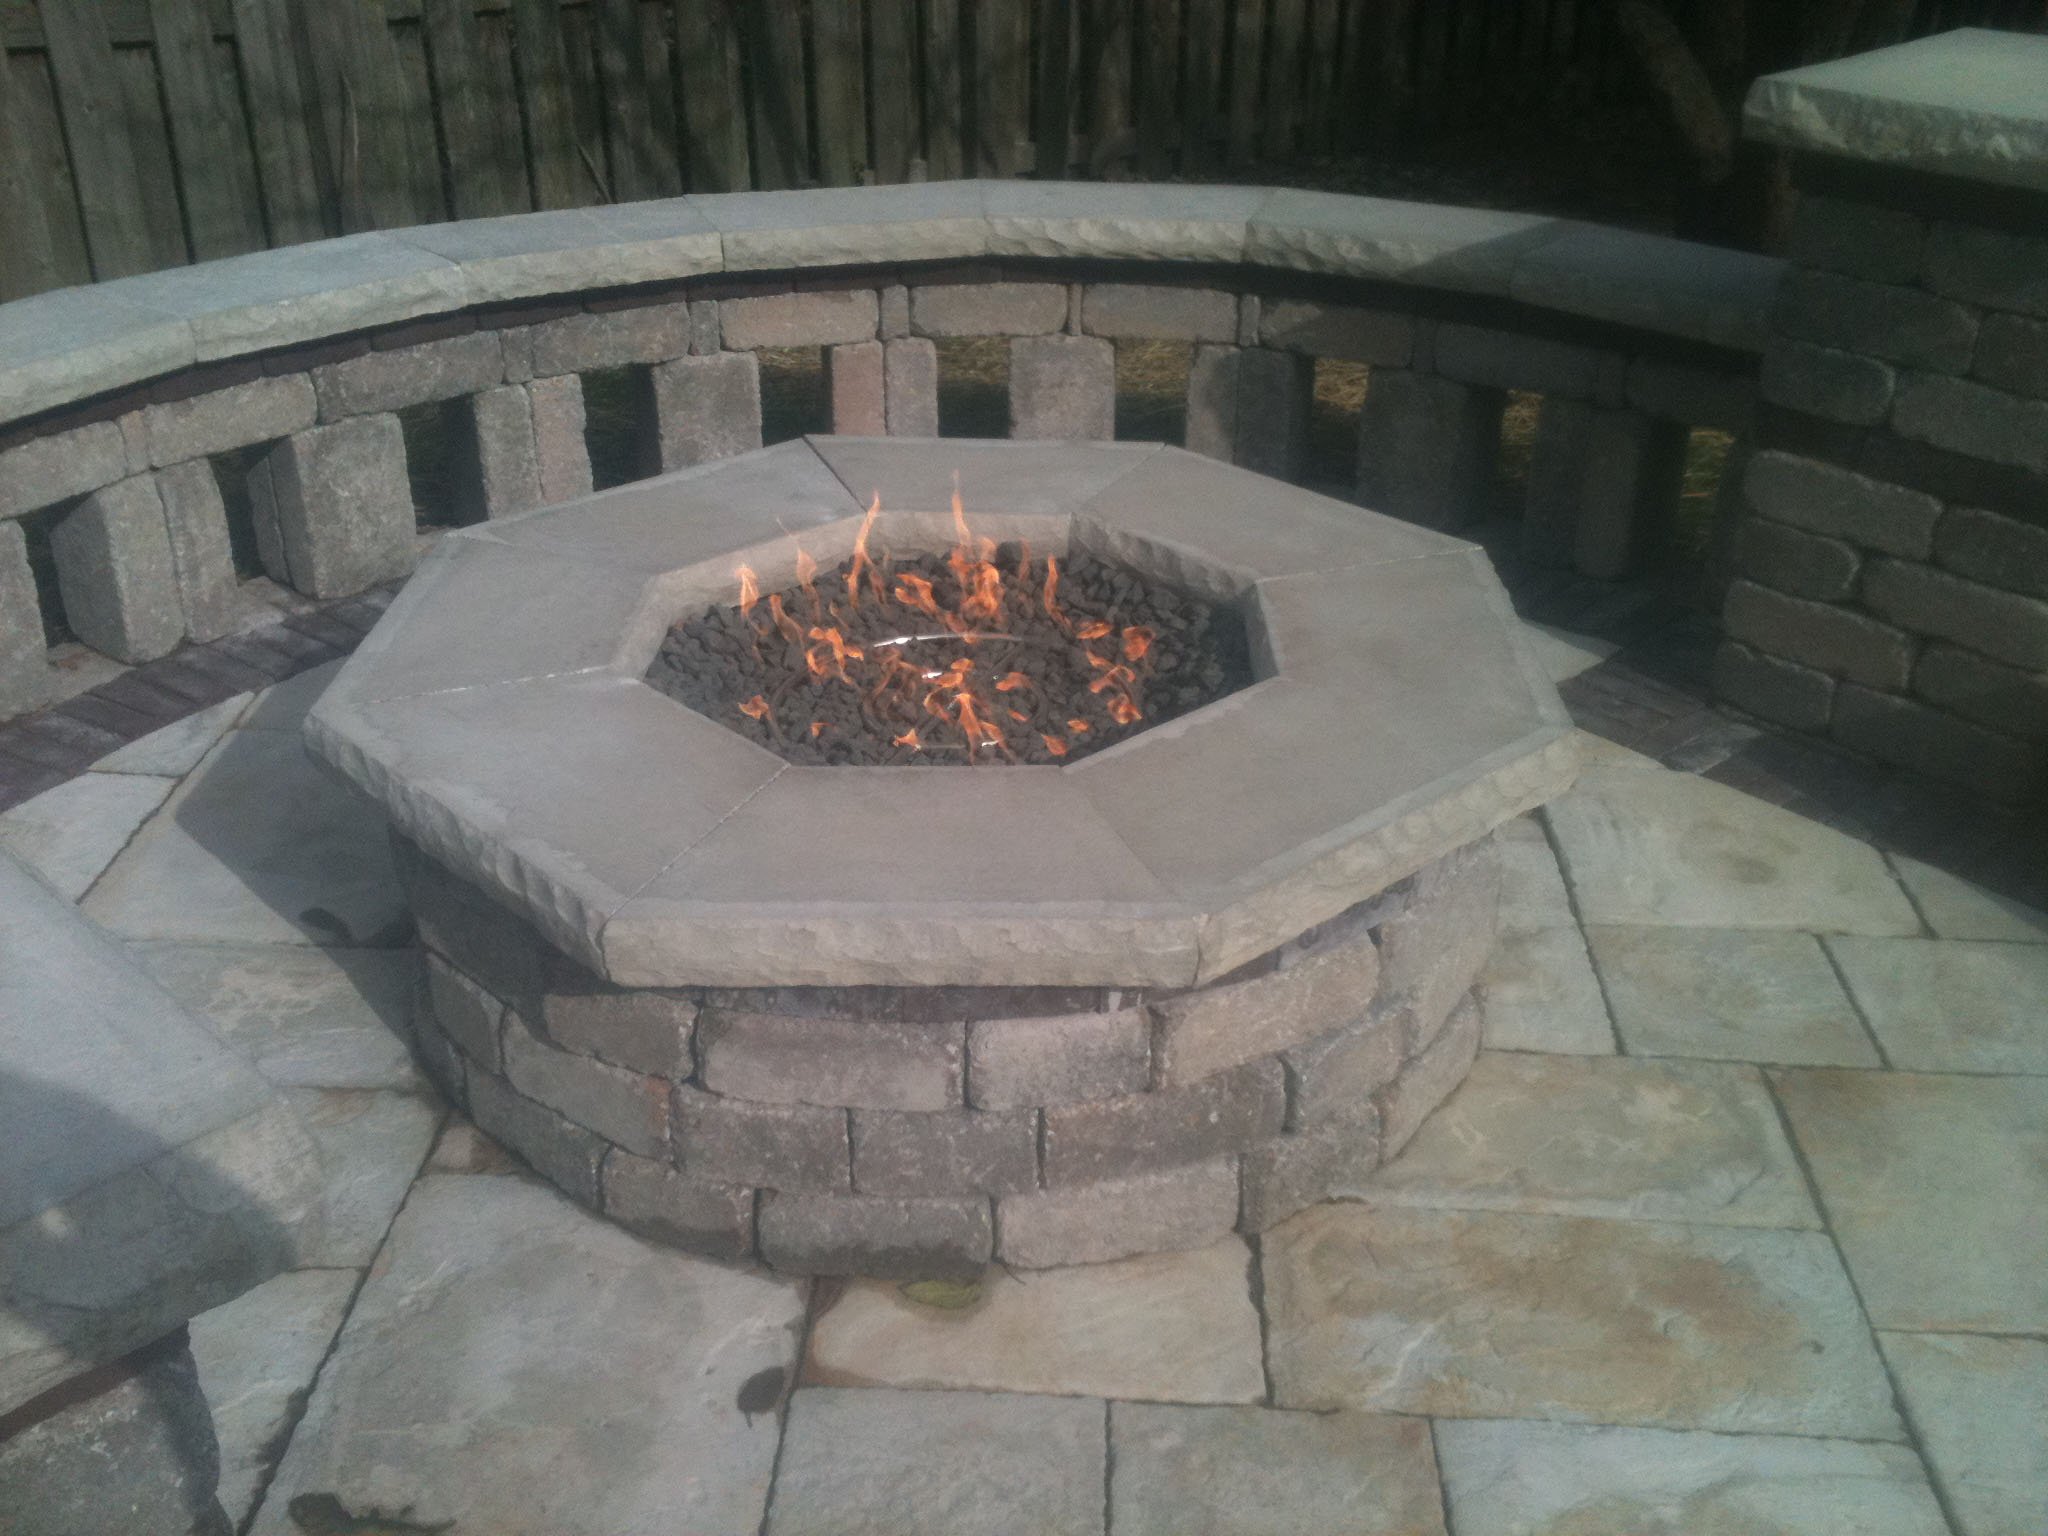 Retaining-Wall-Outside-Fire-Pit.jpg